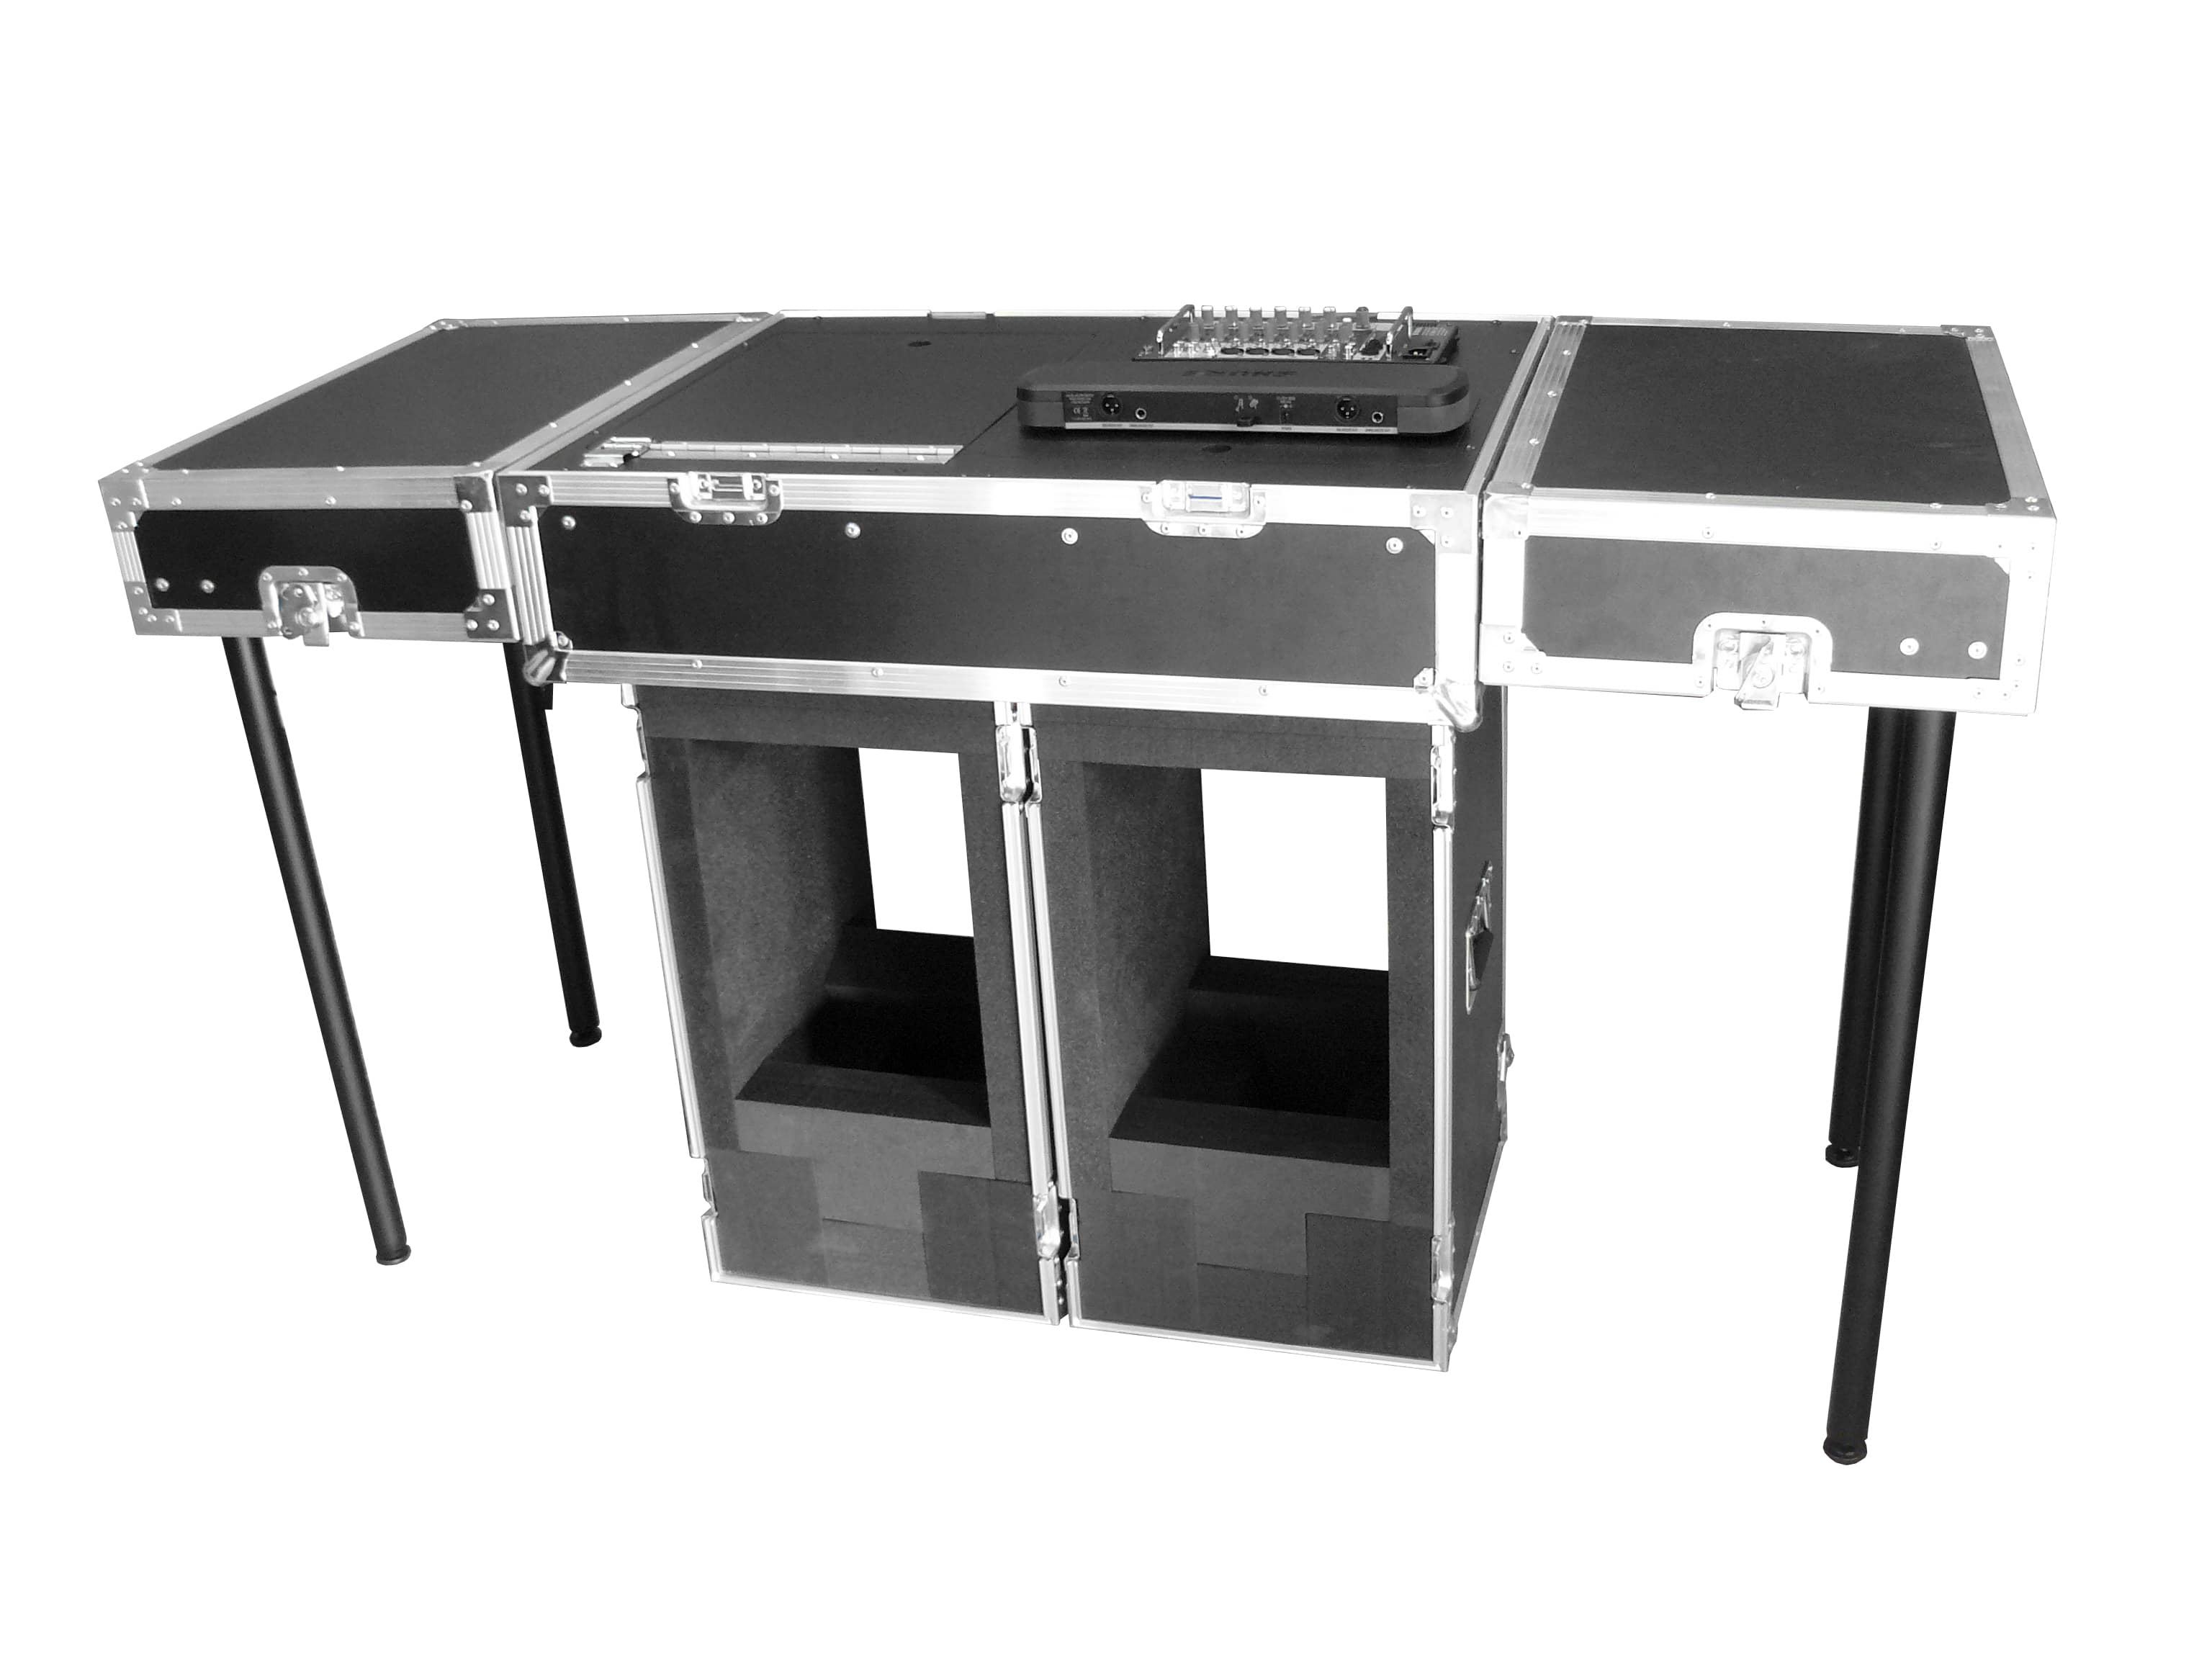 Absolute Casing - Standard DJ Flight Cases